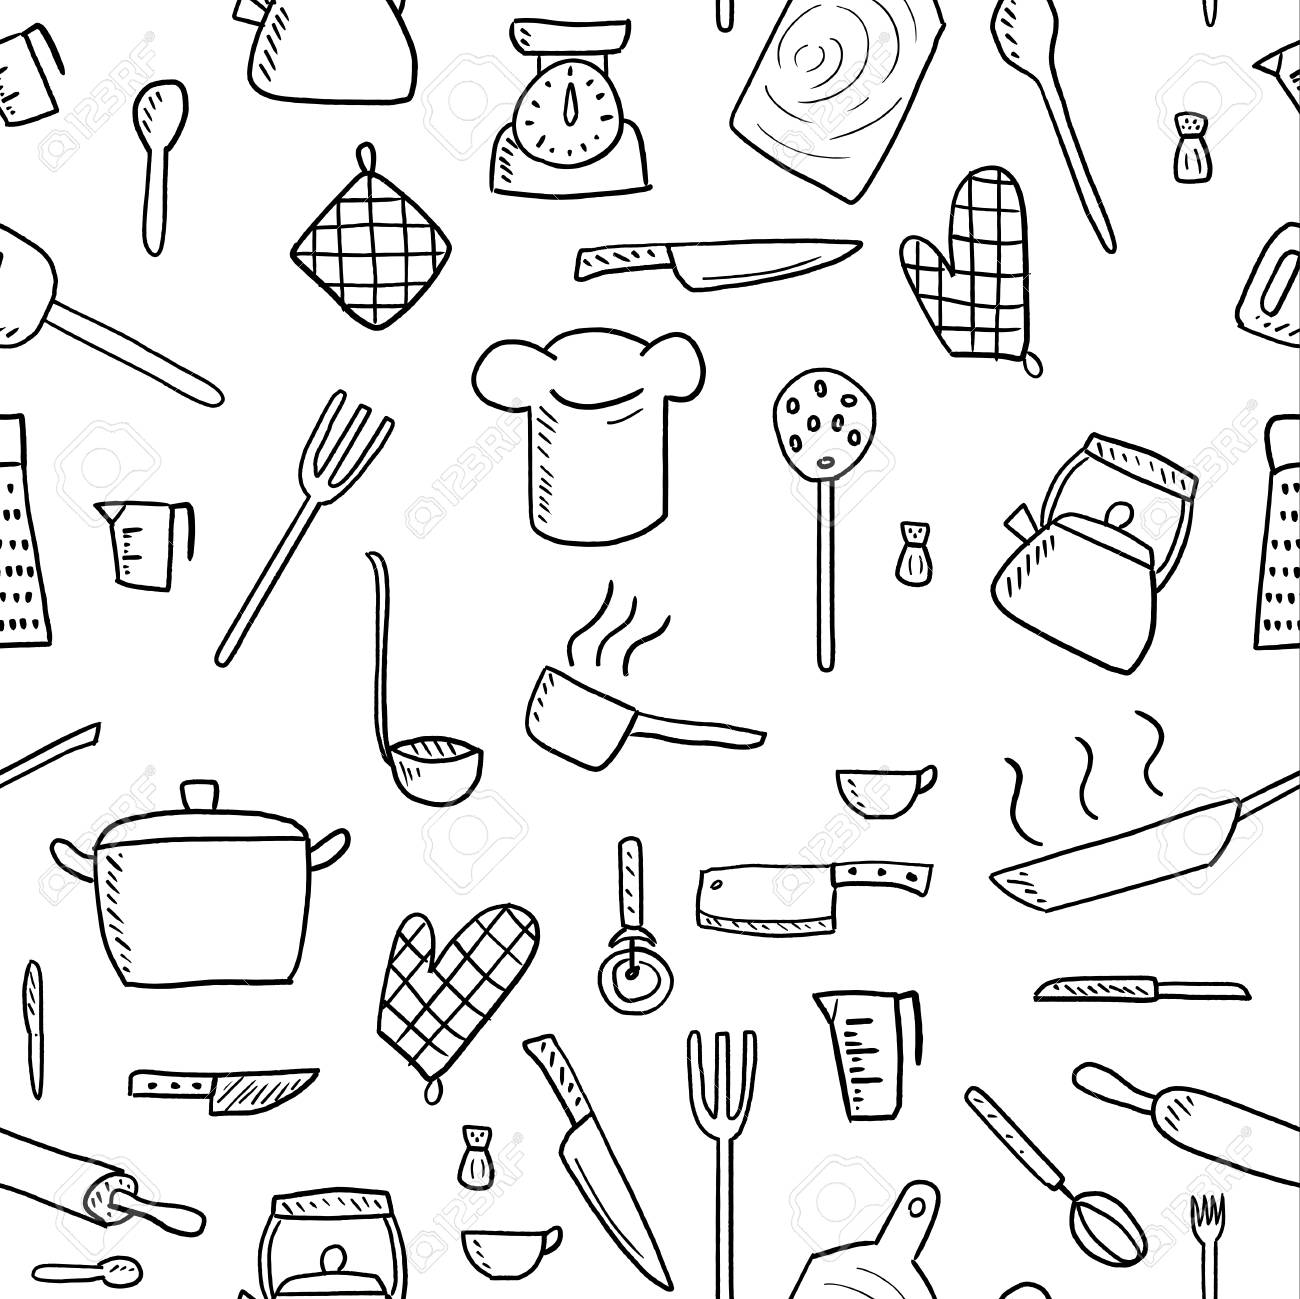 Cooking Utensils And Kitchen Tools - Seamless Background Doodle ...